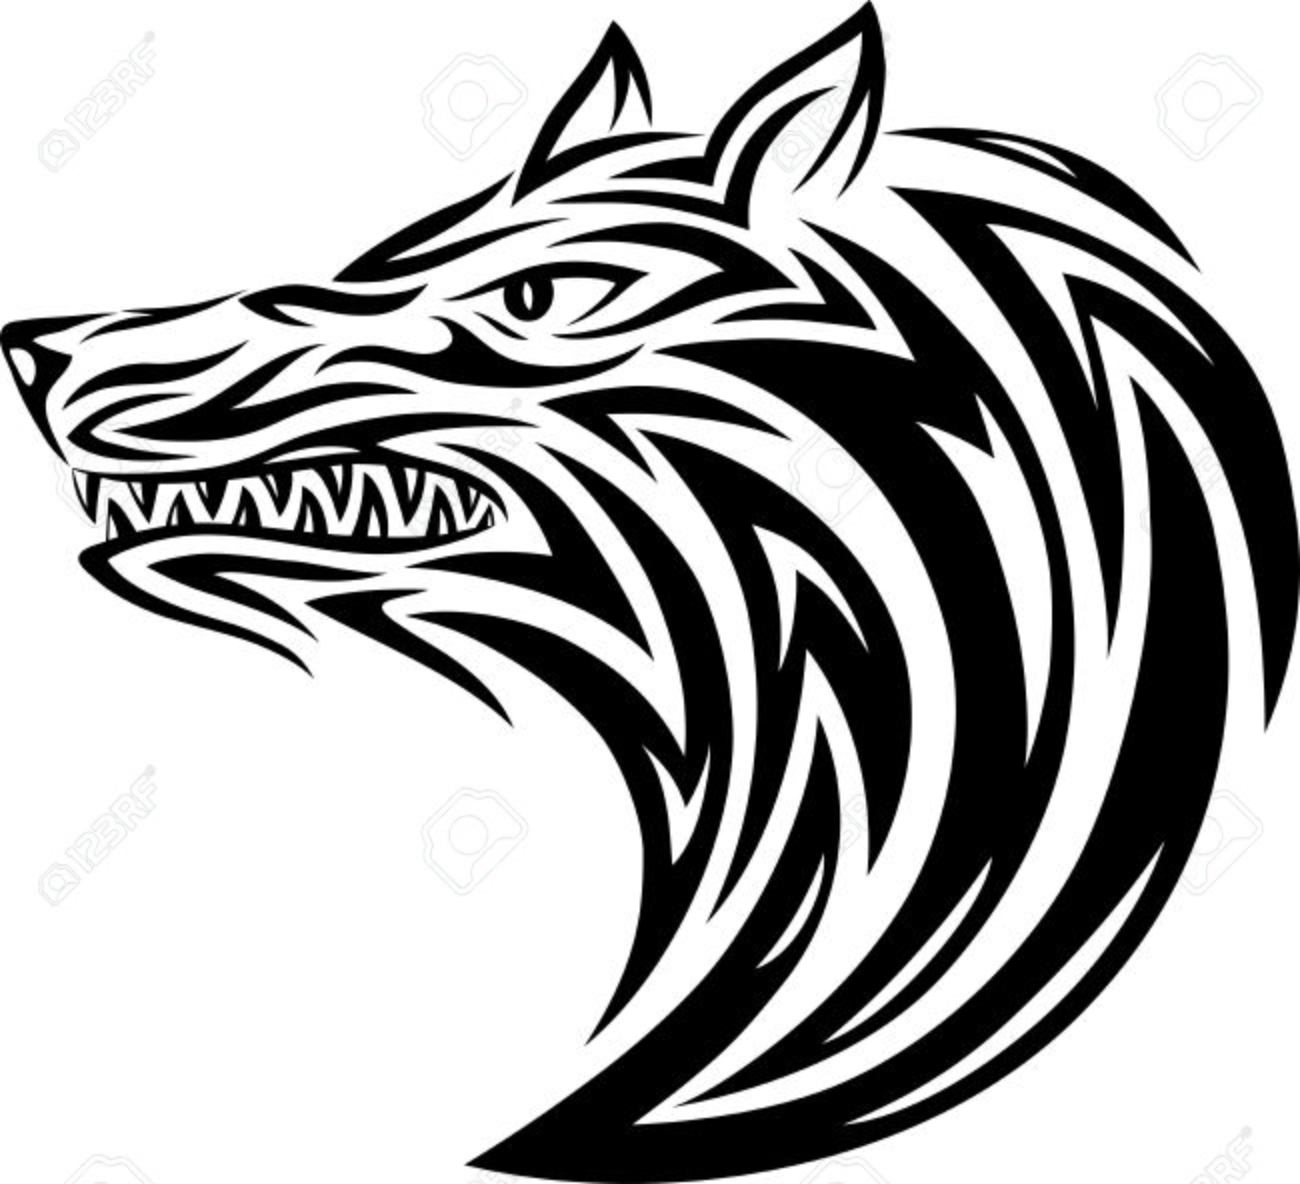 59f03c933c14a Wolf Head Tribal Tattoo Design Vector File Royalty Free Cliparts ...